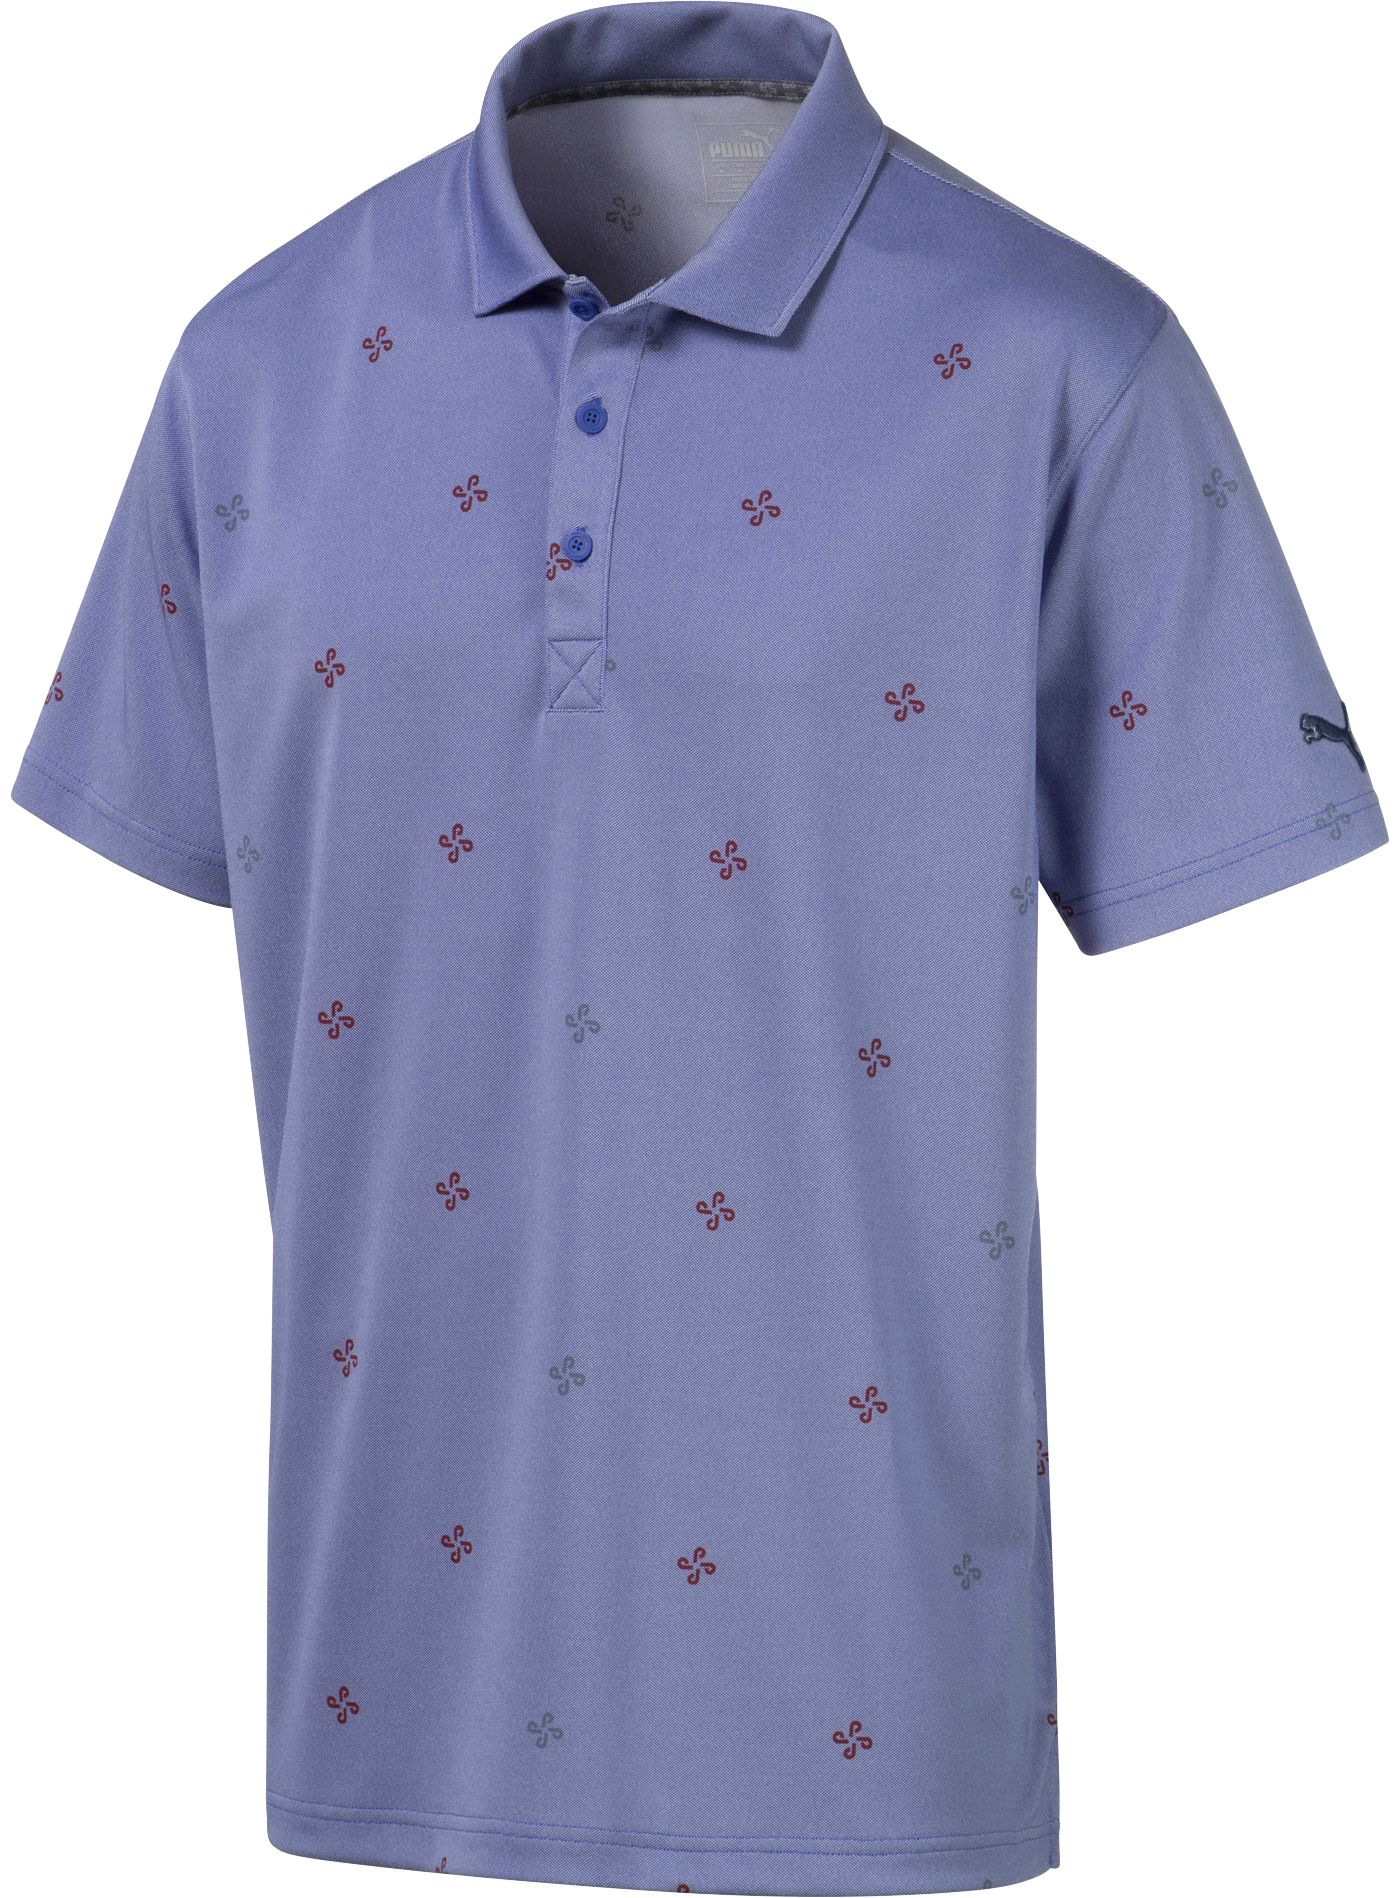 PUMA Men's Ditsy Golf Polo